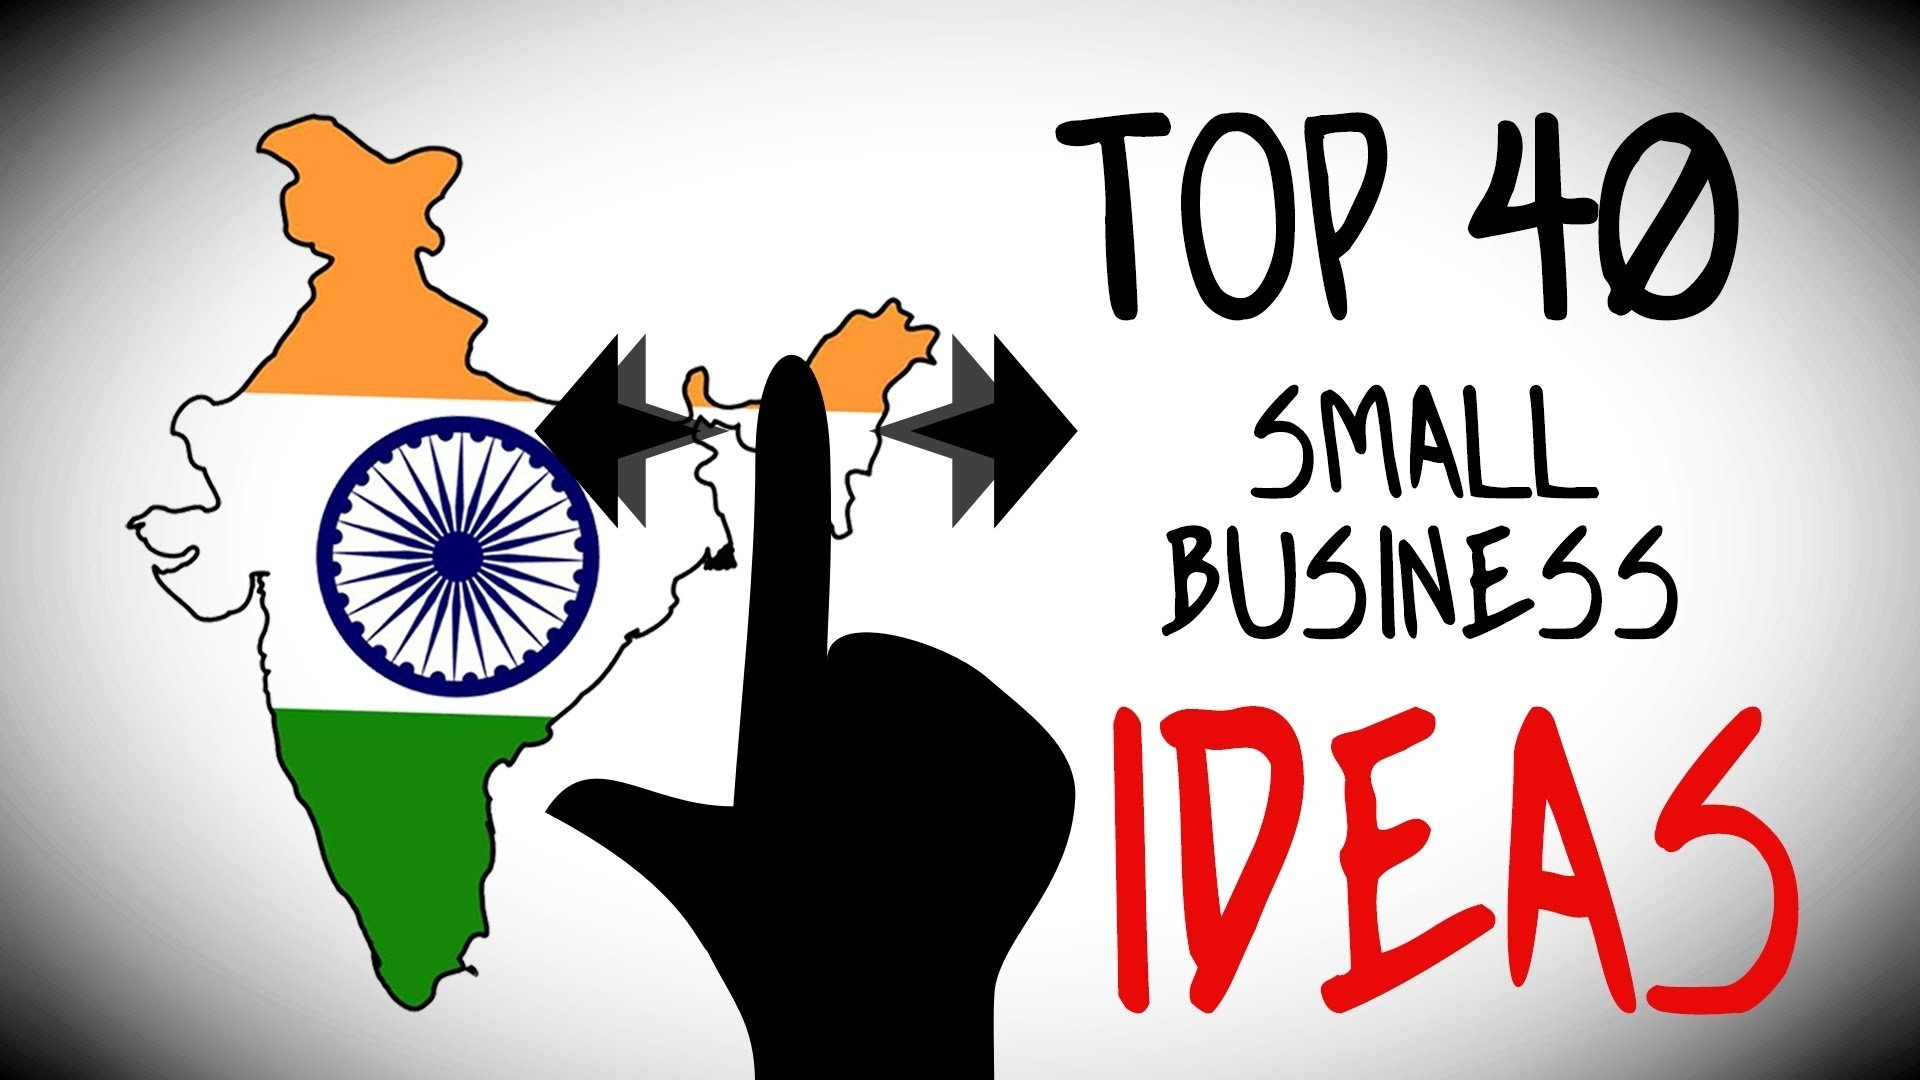 10 Stylish New Business Ideas To Start top 40 small business ideas in india for starting your own business 5 2020